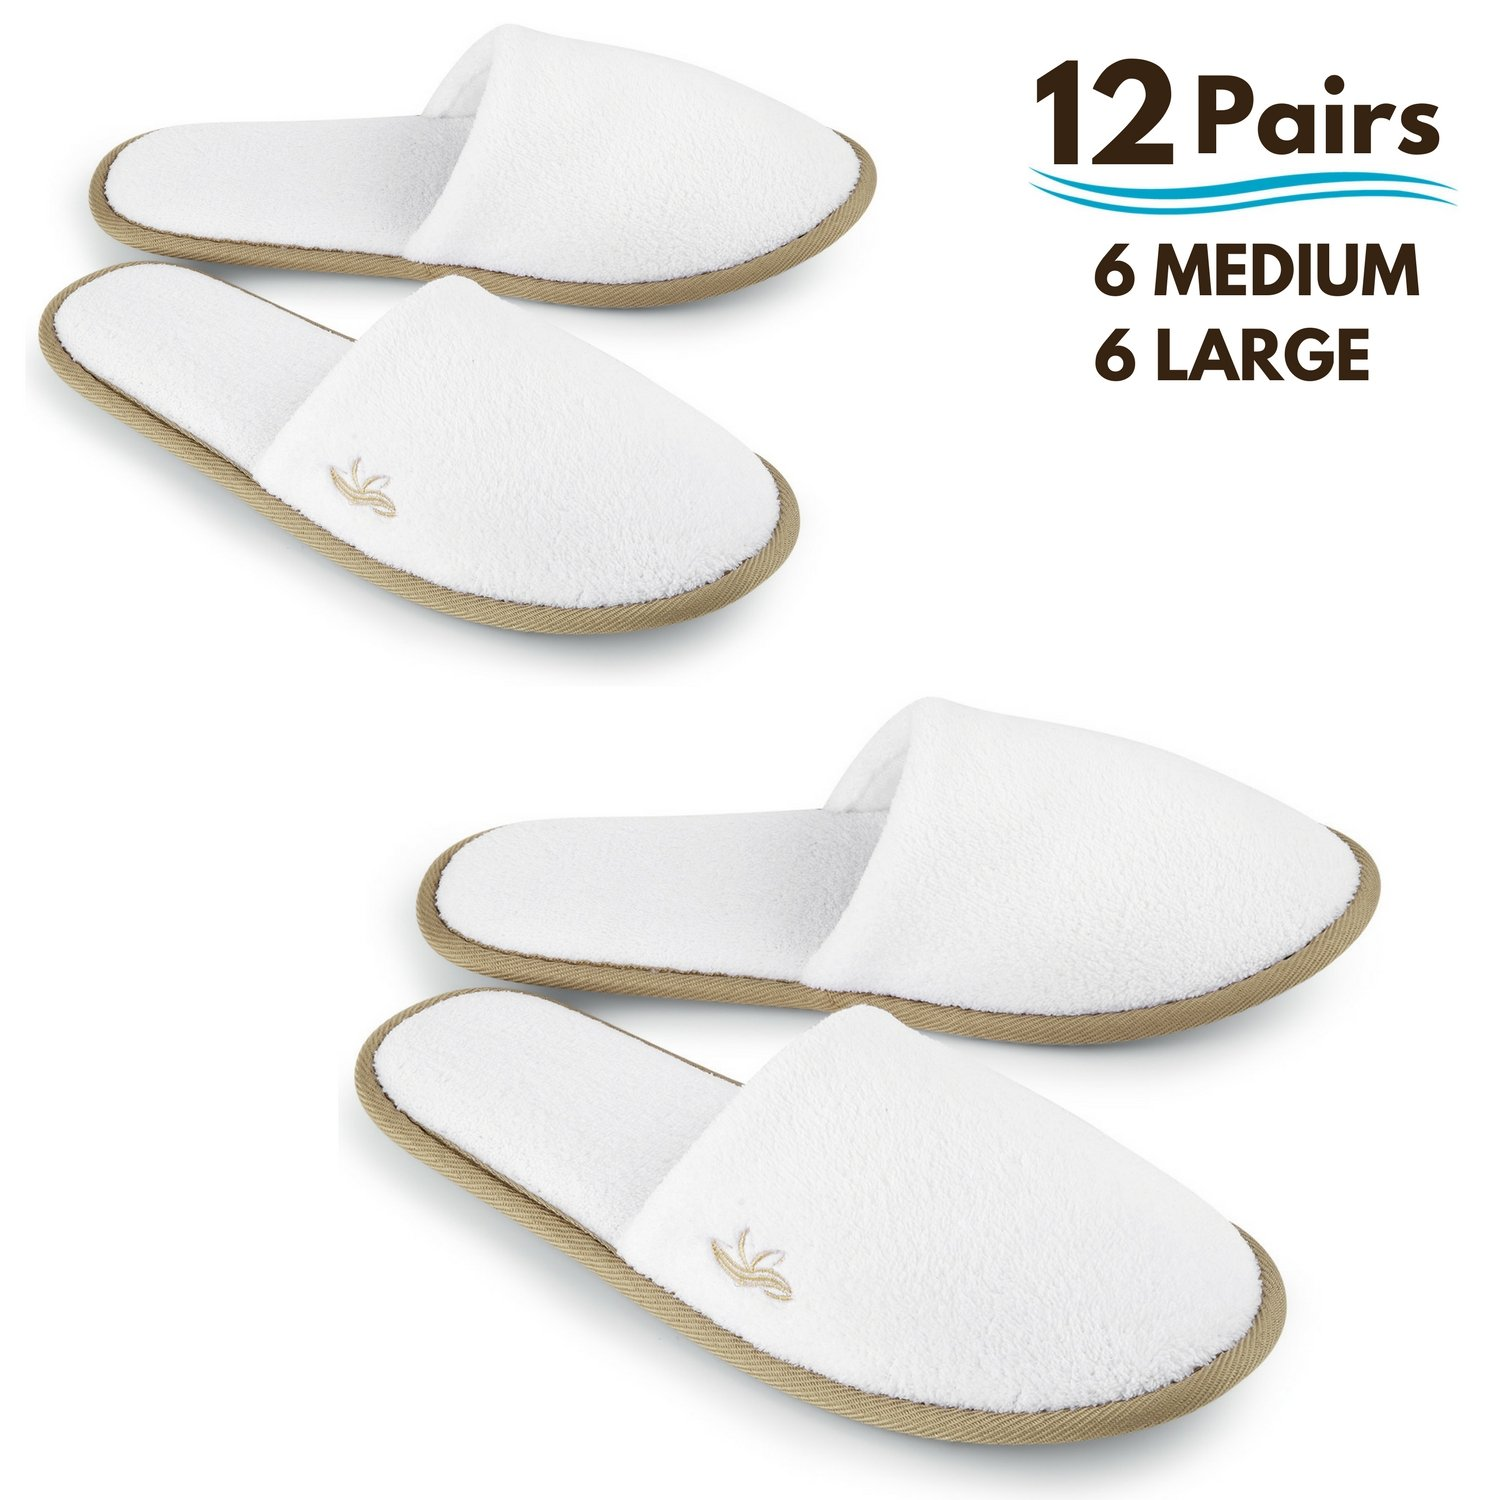 BERGMAN KELLY Spa Slippers, Closed Toe (White, Cocoa Trim, 12 Pairs- 6 Large, 6 Medium) Disposable Indoor Hotel Slippers for Men and Women, Fluffy Coral Fleece, Deluxe Padded Sole for Extra Comfort by BERGMAN KELLY